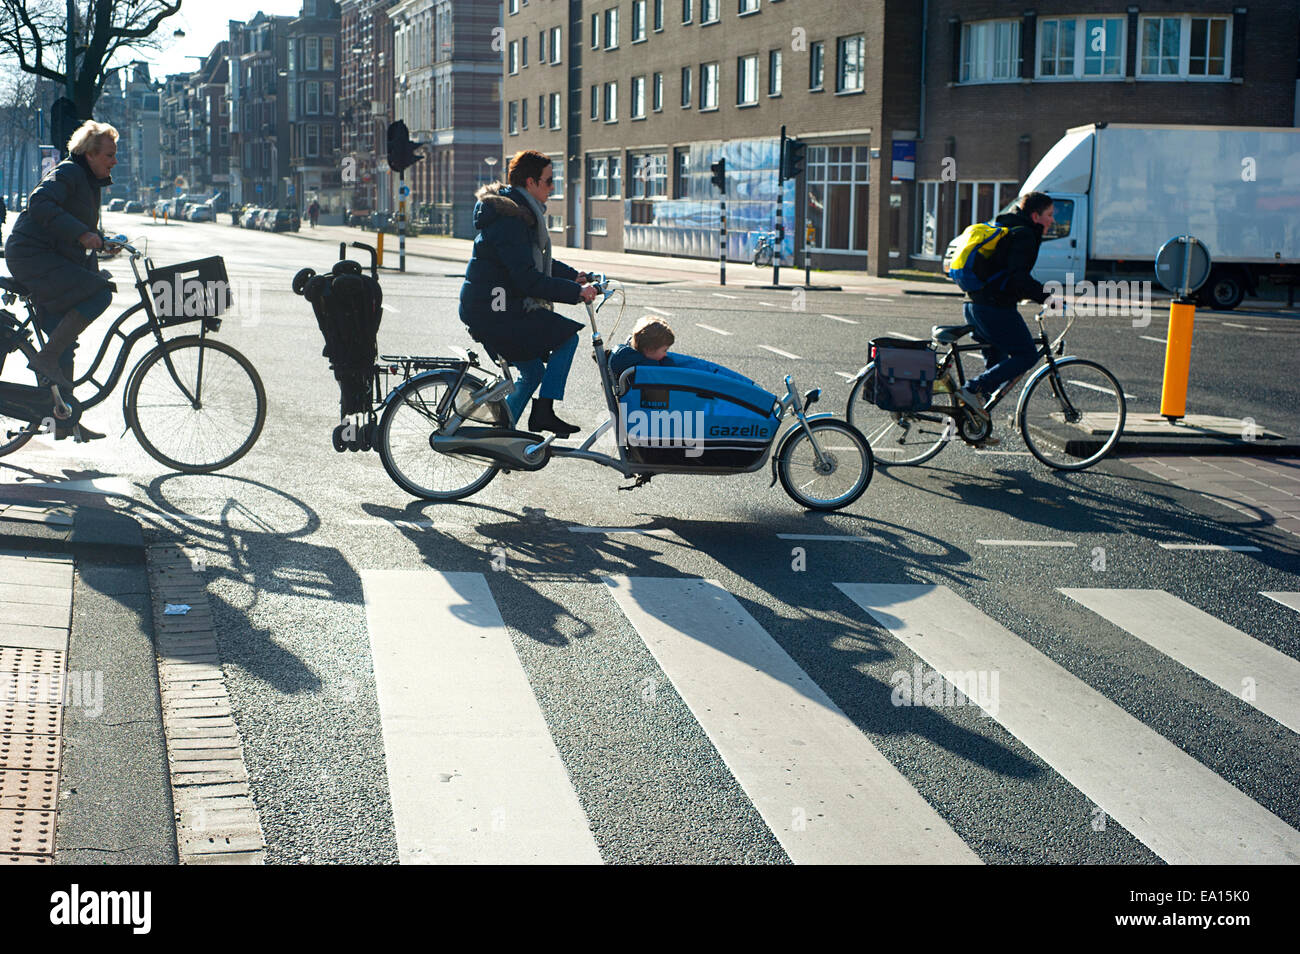 Amsterdam bicyclists - Stock Image